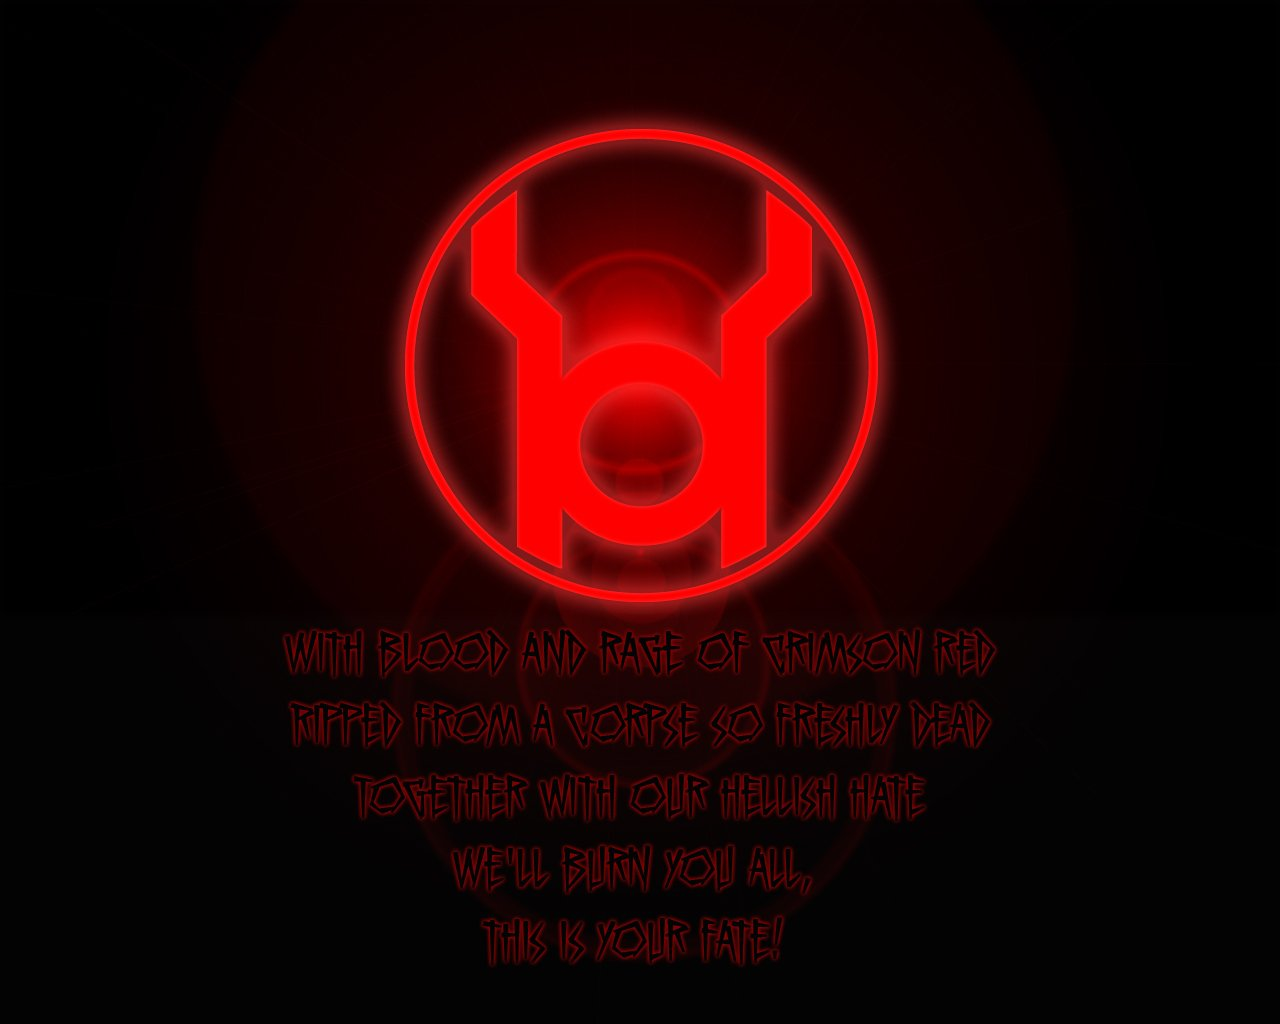 Red Lantern Logo Wallpaper Images Pictures   Becuo 1280x1024